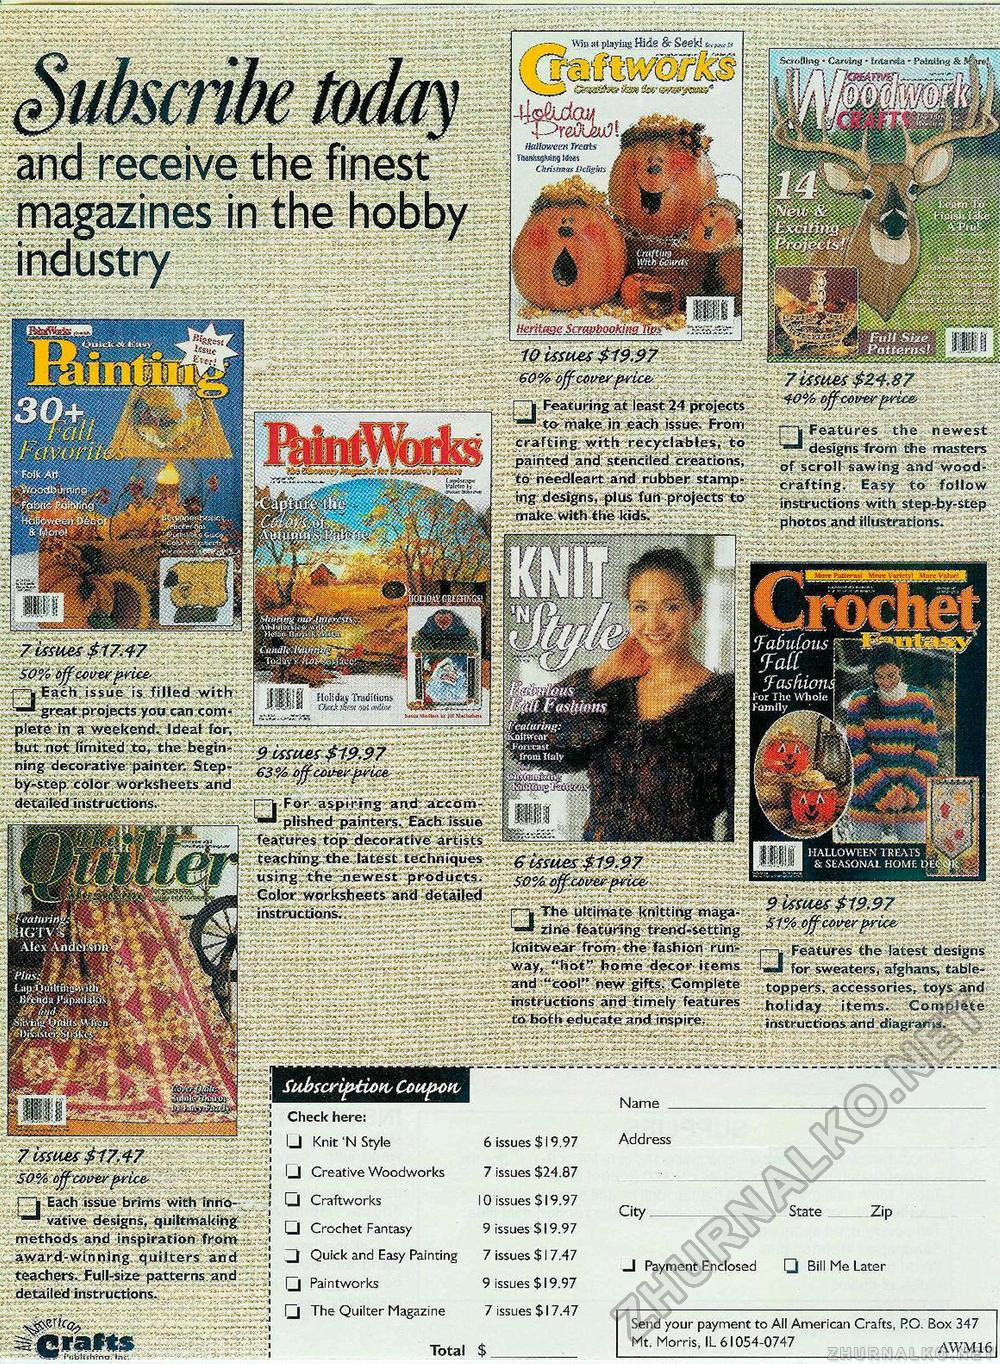 Creative Woodworks & crafts 2001-06, страница 43